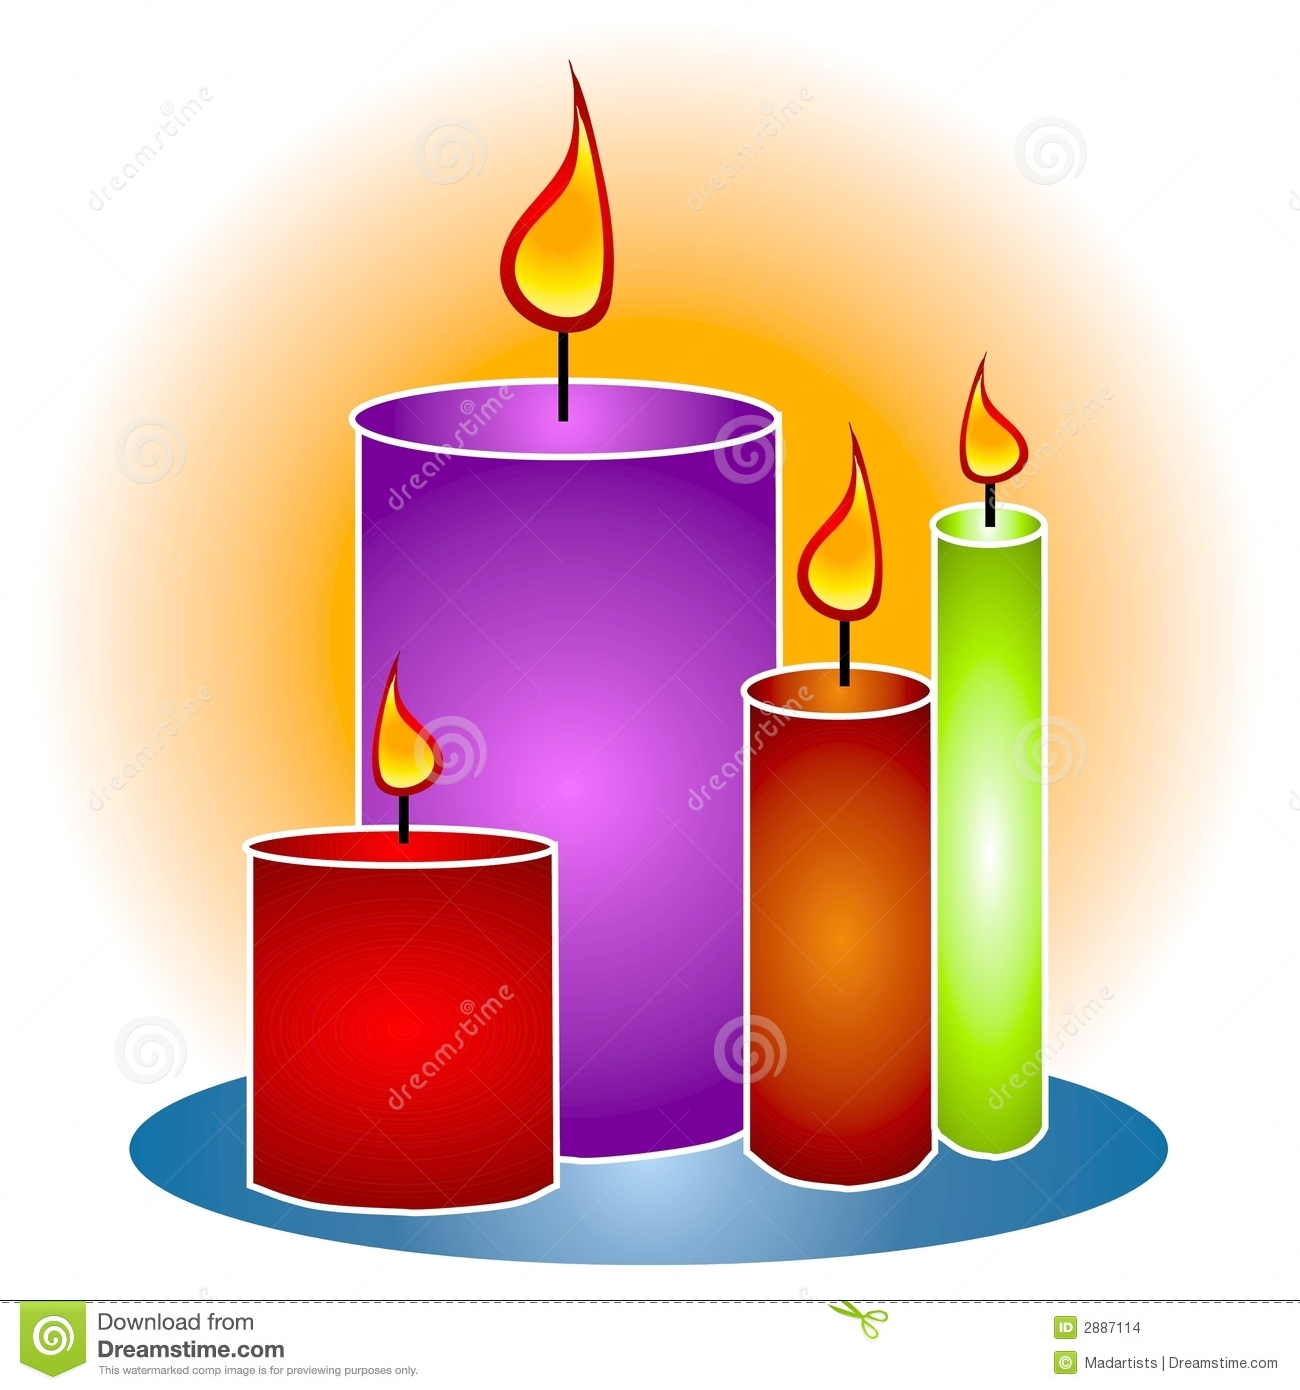 Flame image panda free. Clipart candle